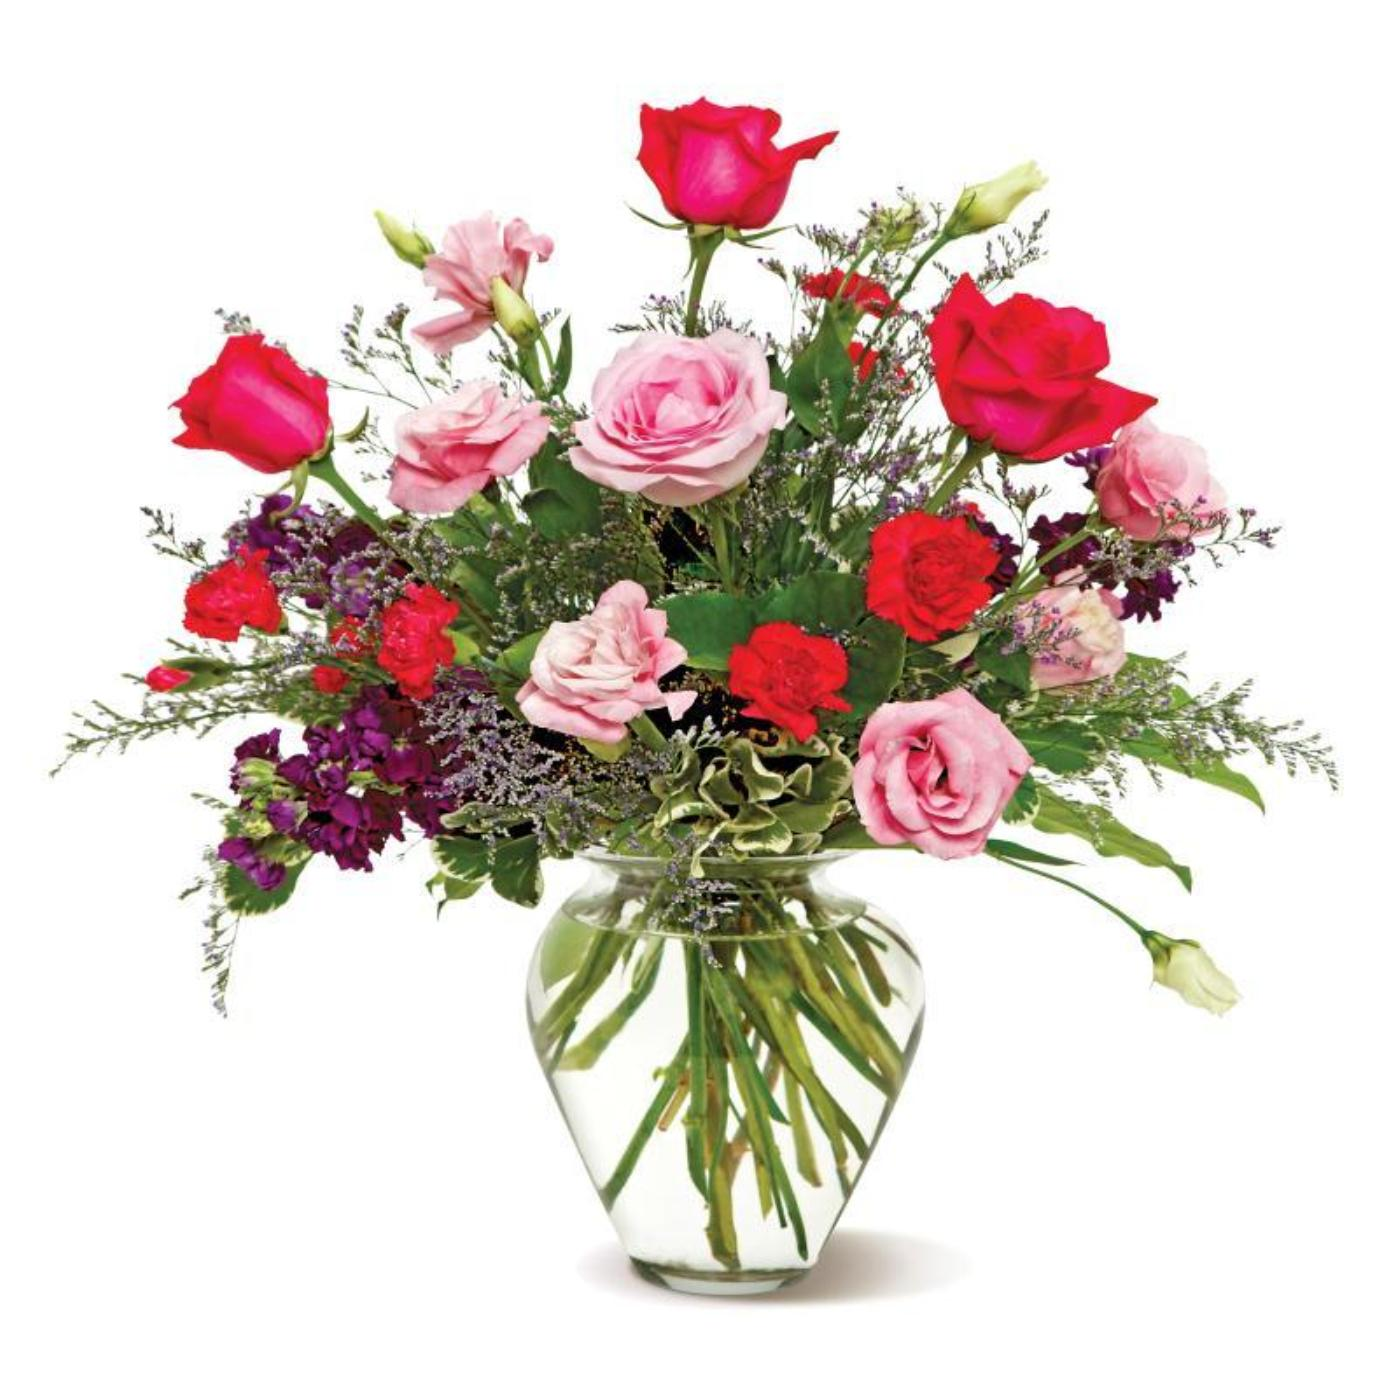 A Blush Of Color - Red & Pink Flowers in Glass Vase Arrangement